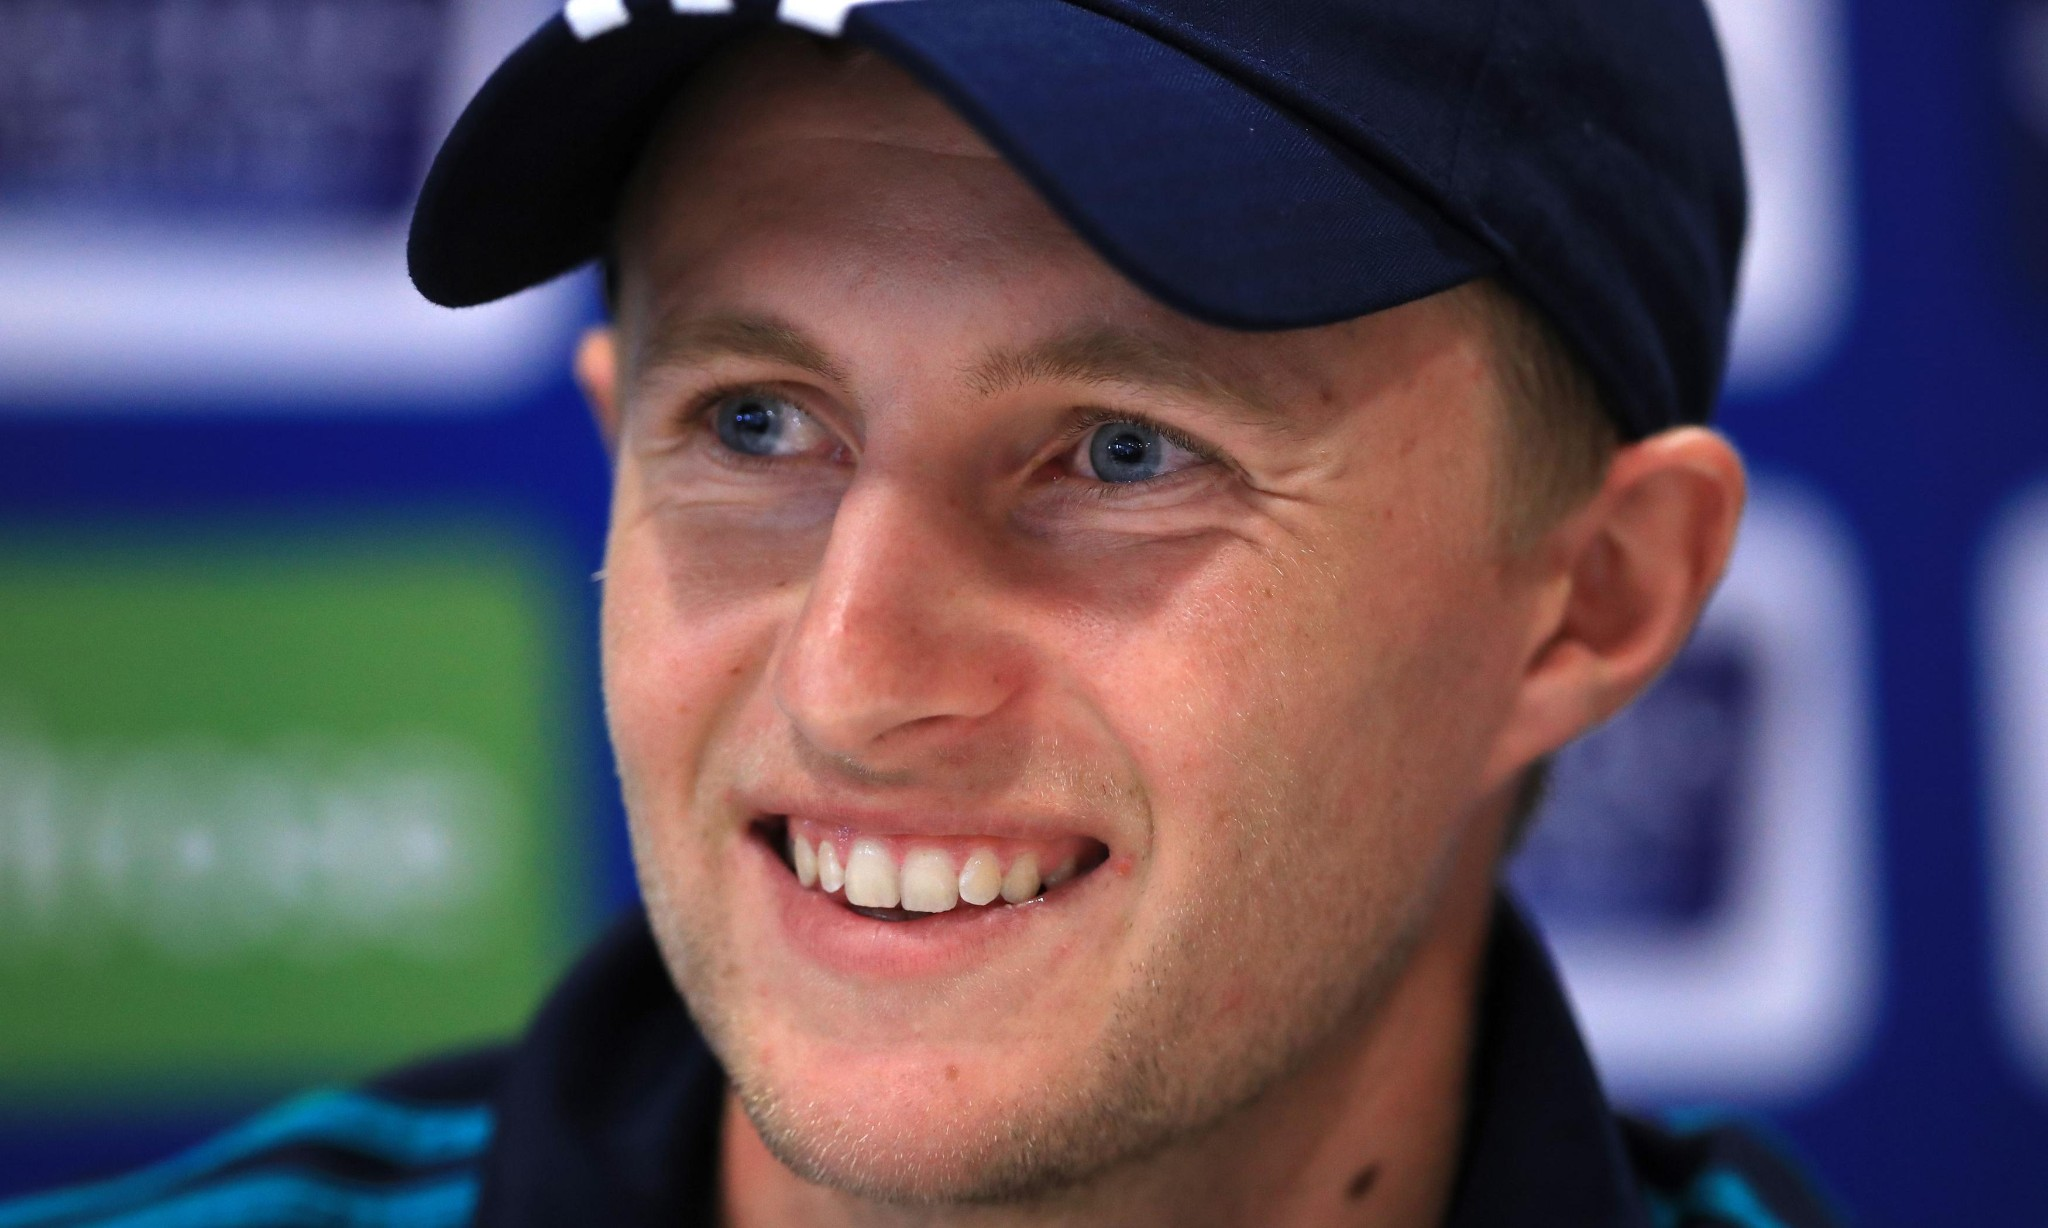 Joe Root's promotion to England captain looks secured as others queue to be No2